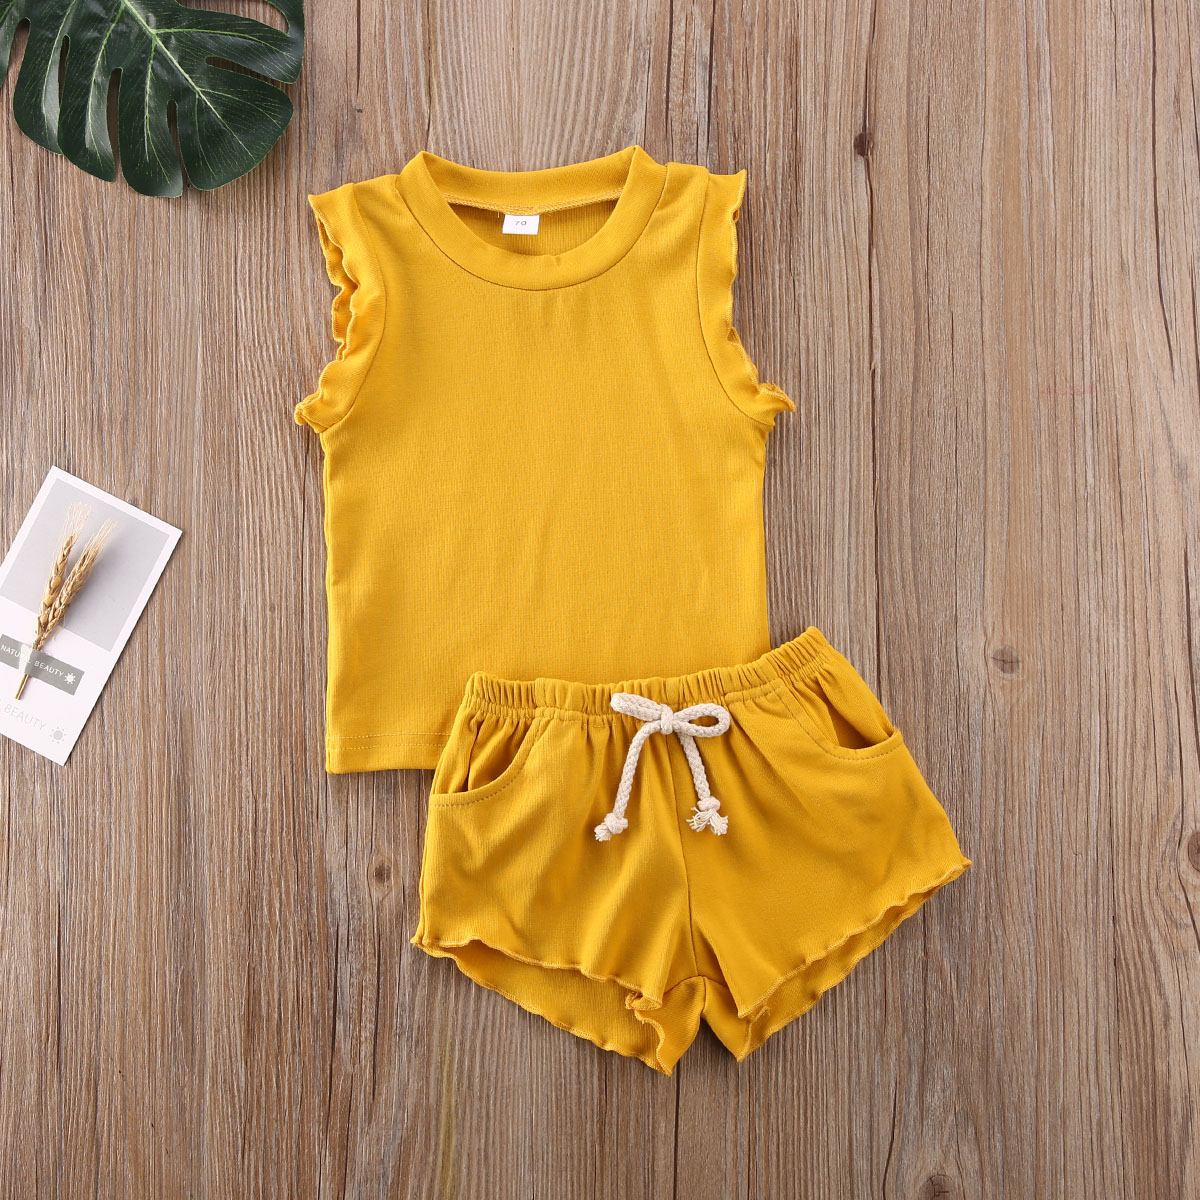 Pudcoco Newborn Baby Girl Clothes Summer Sleeveless Ruffle Tops Short Pants 2Pcs Outfits Knitted Cotton Clothes Sunsuit